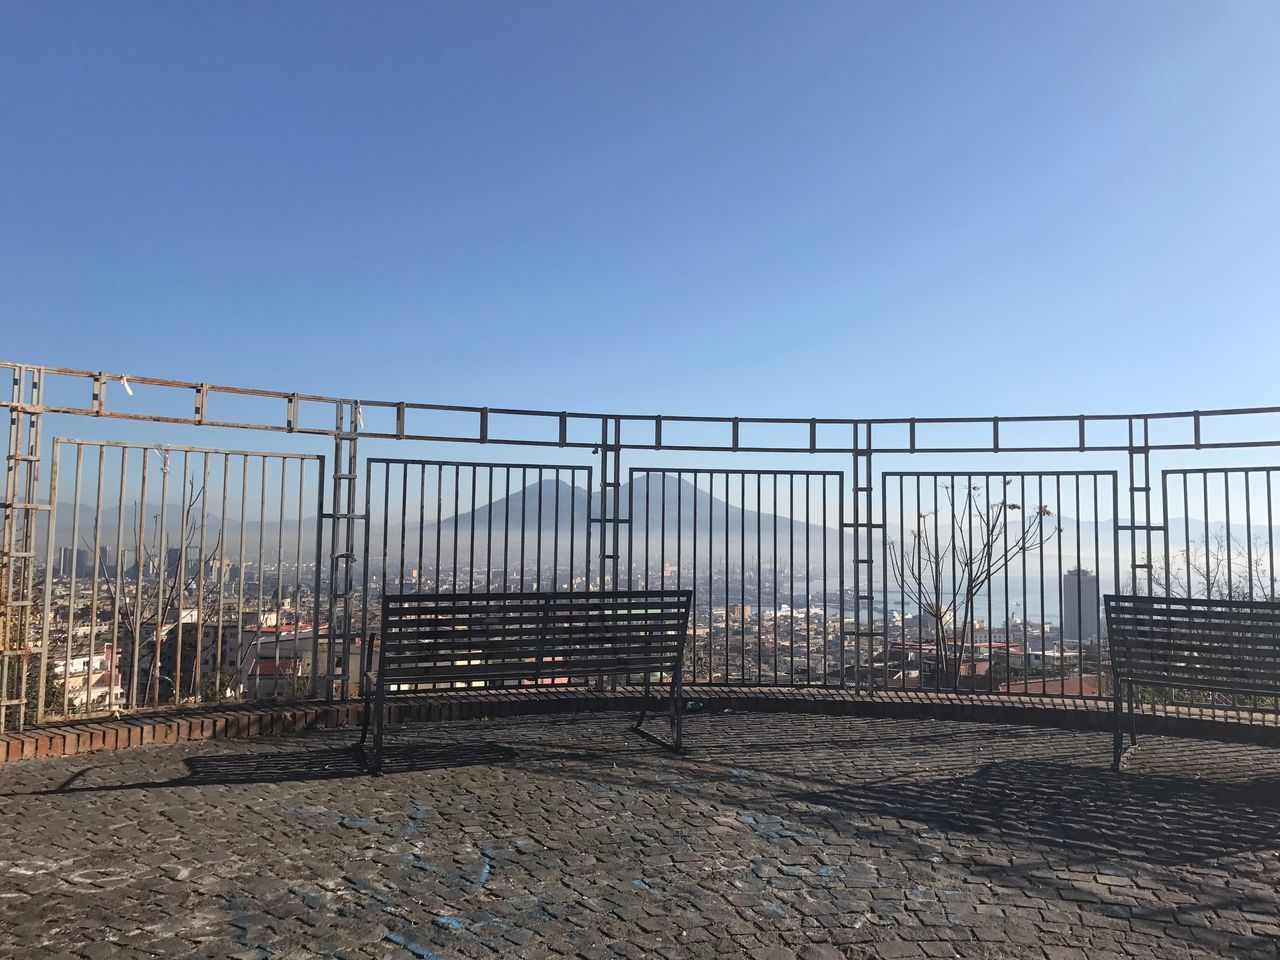 railing, architecture, clear sky, no people, outdoors, built structure, day, city, sky